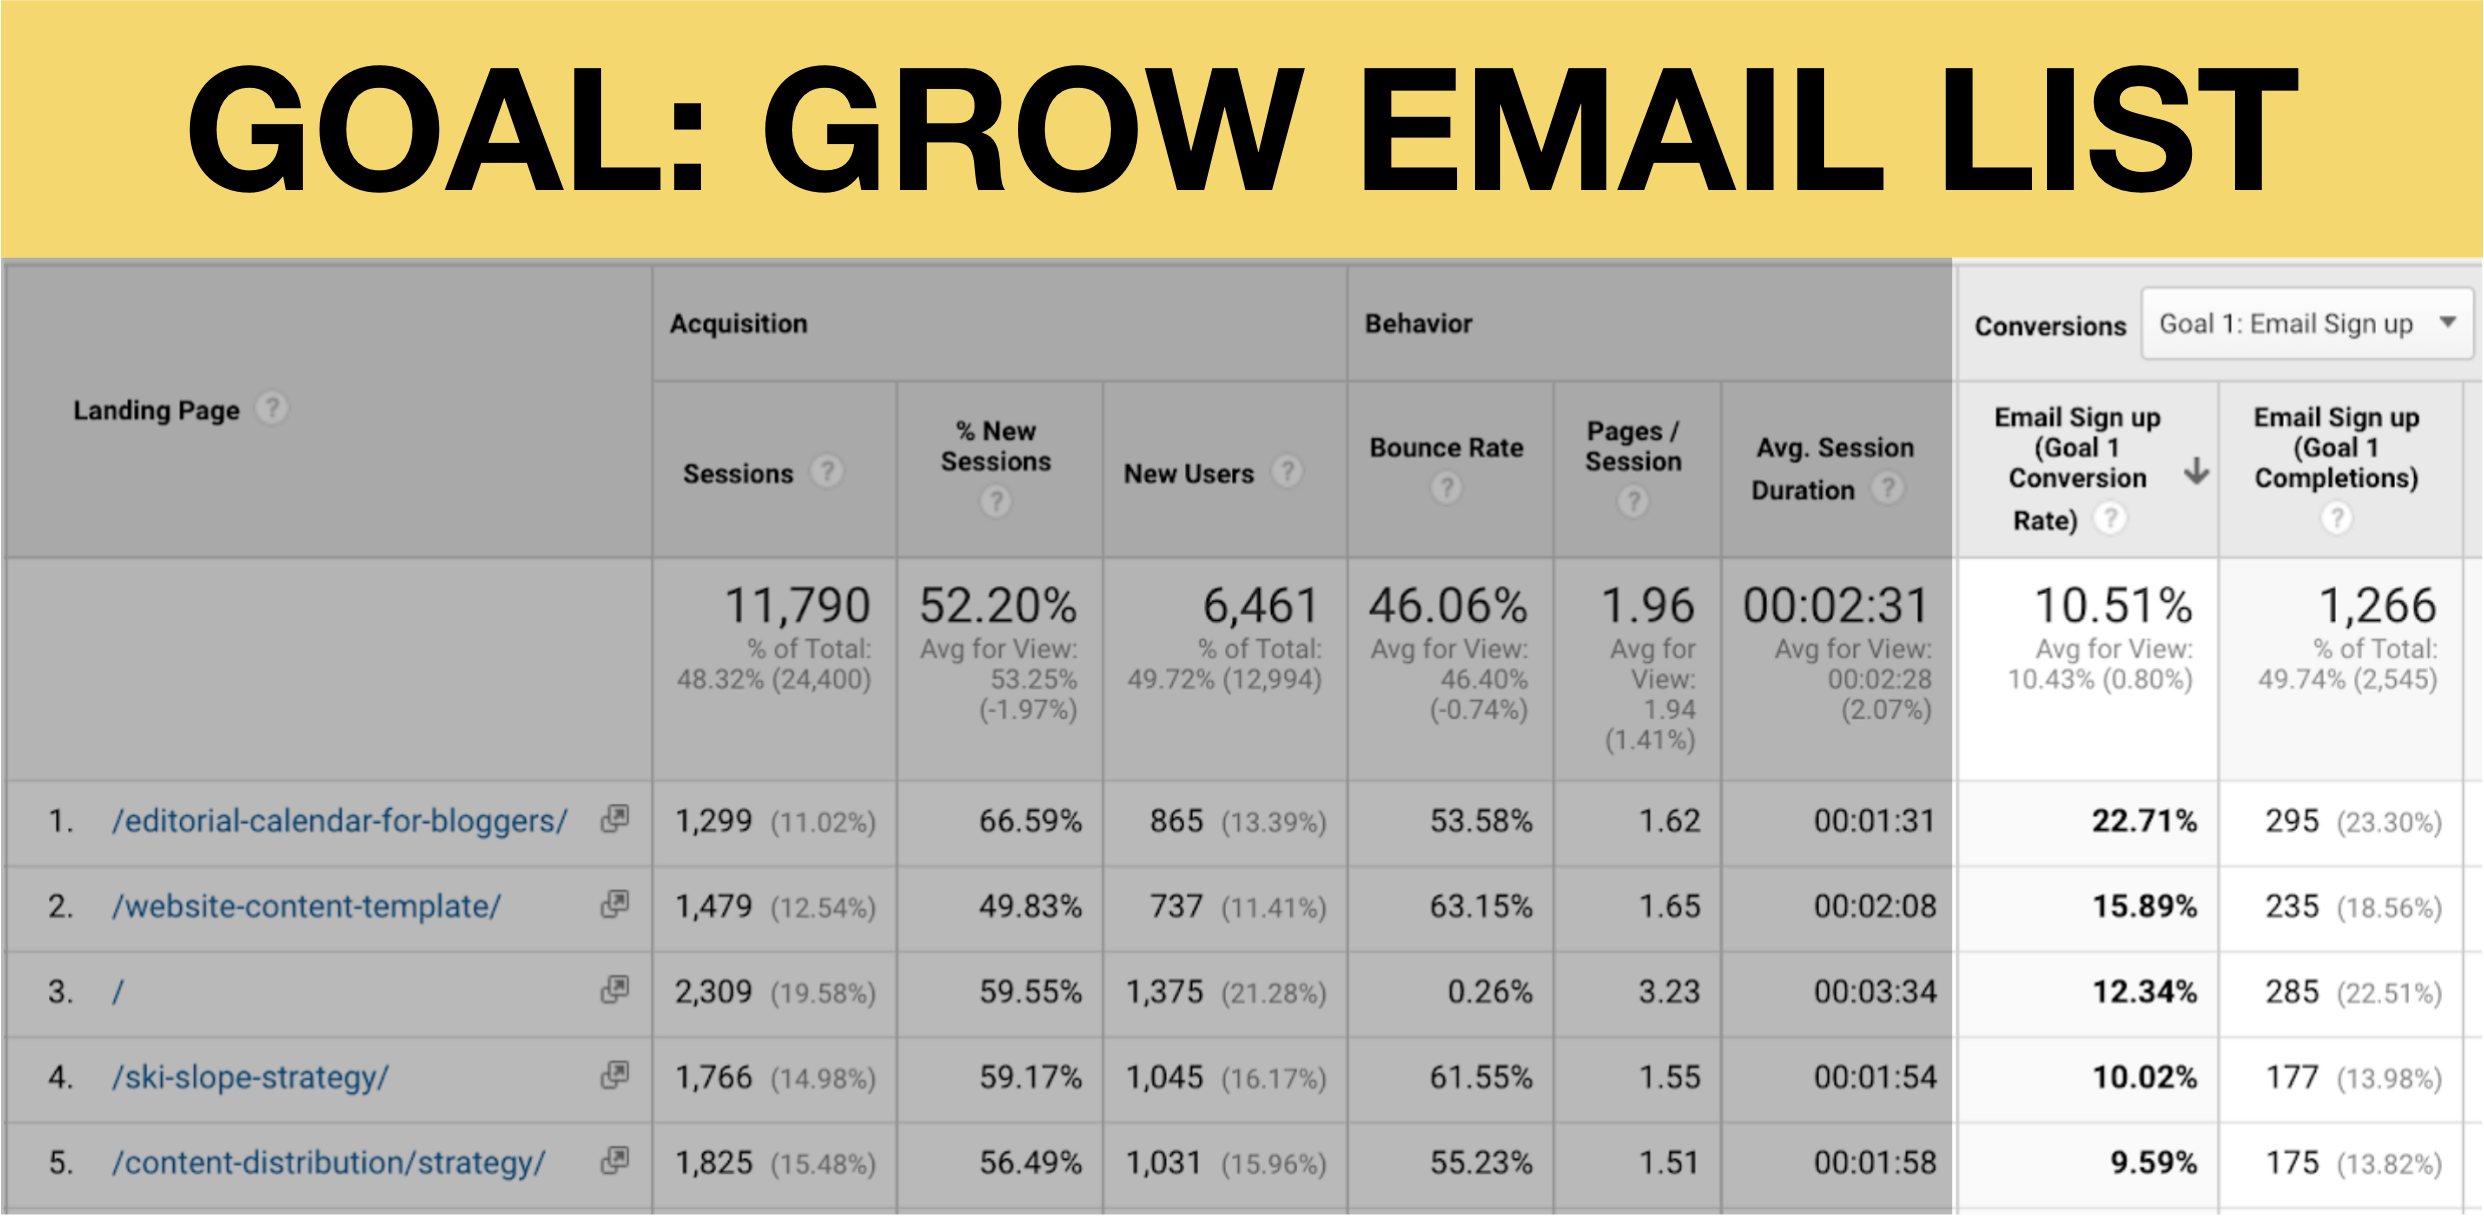 grow email list goal image